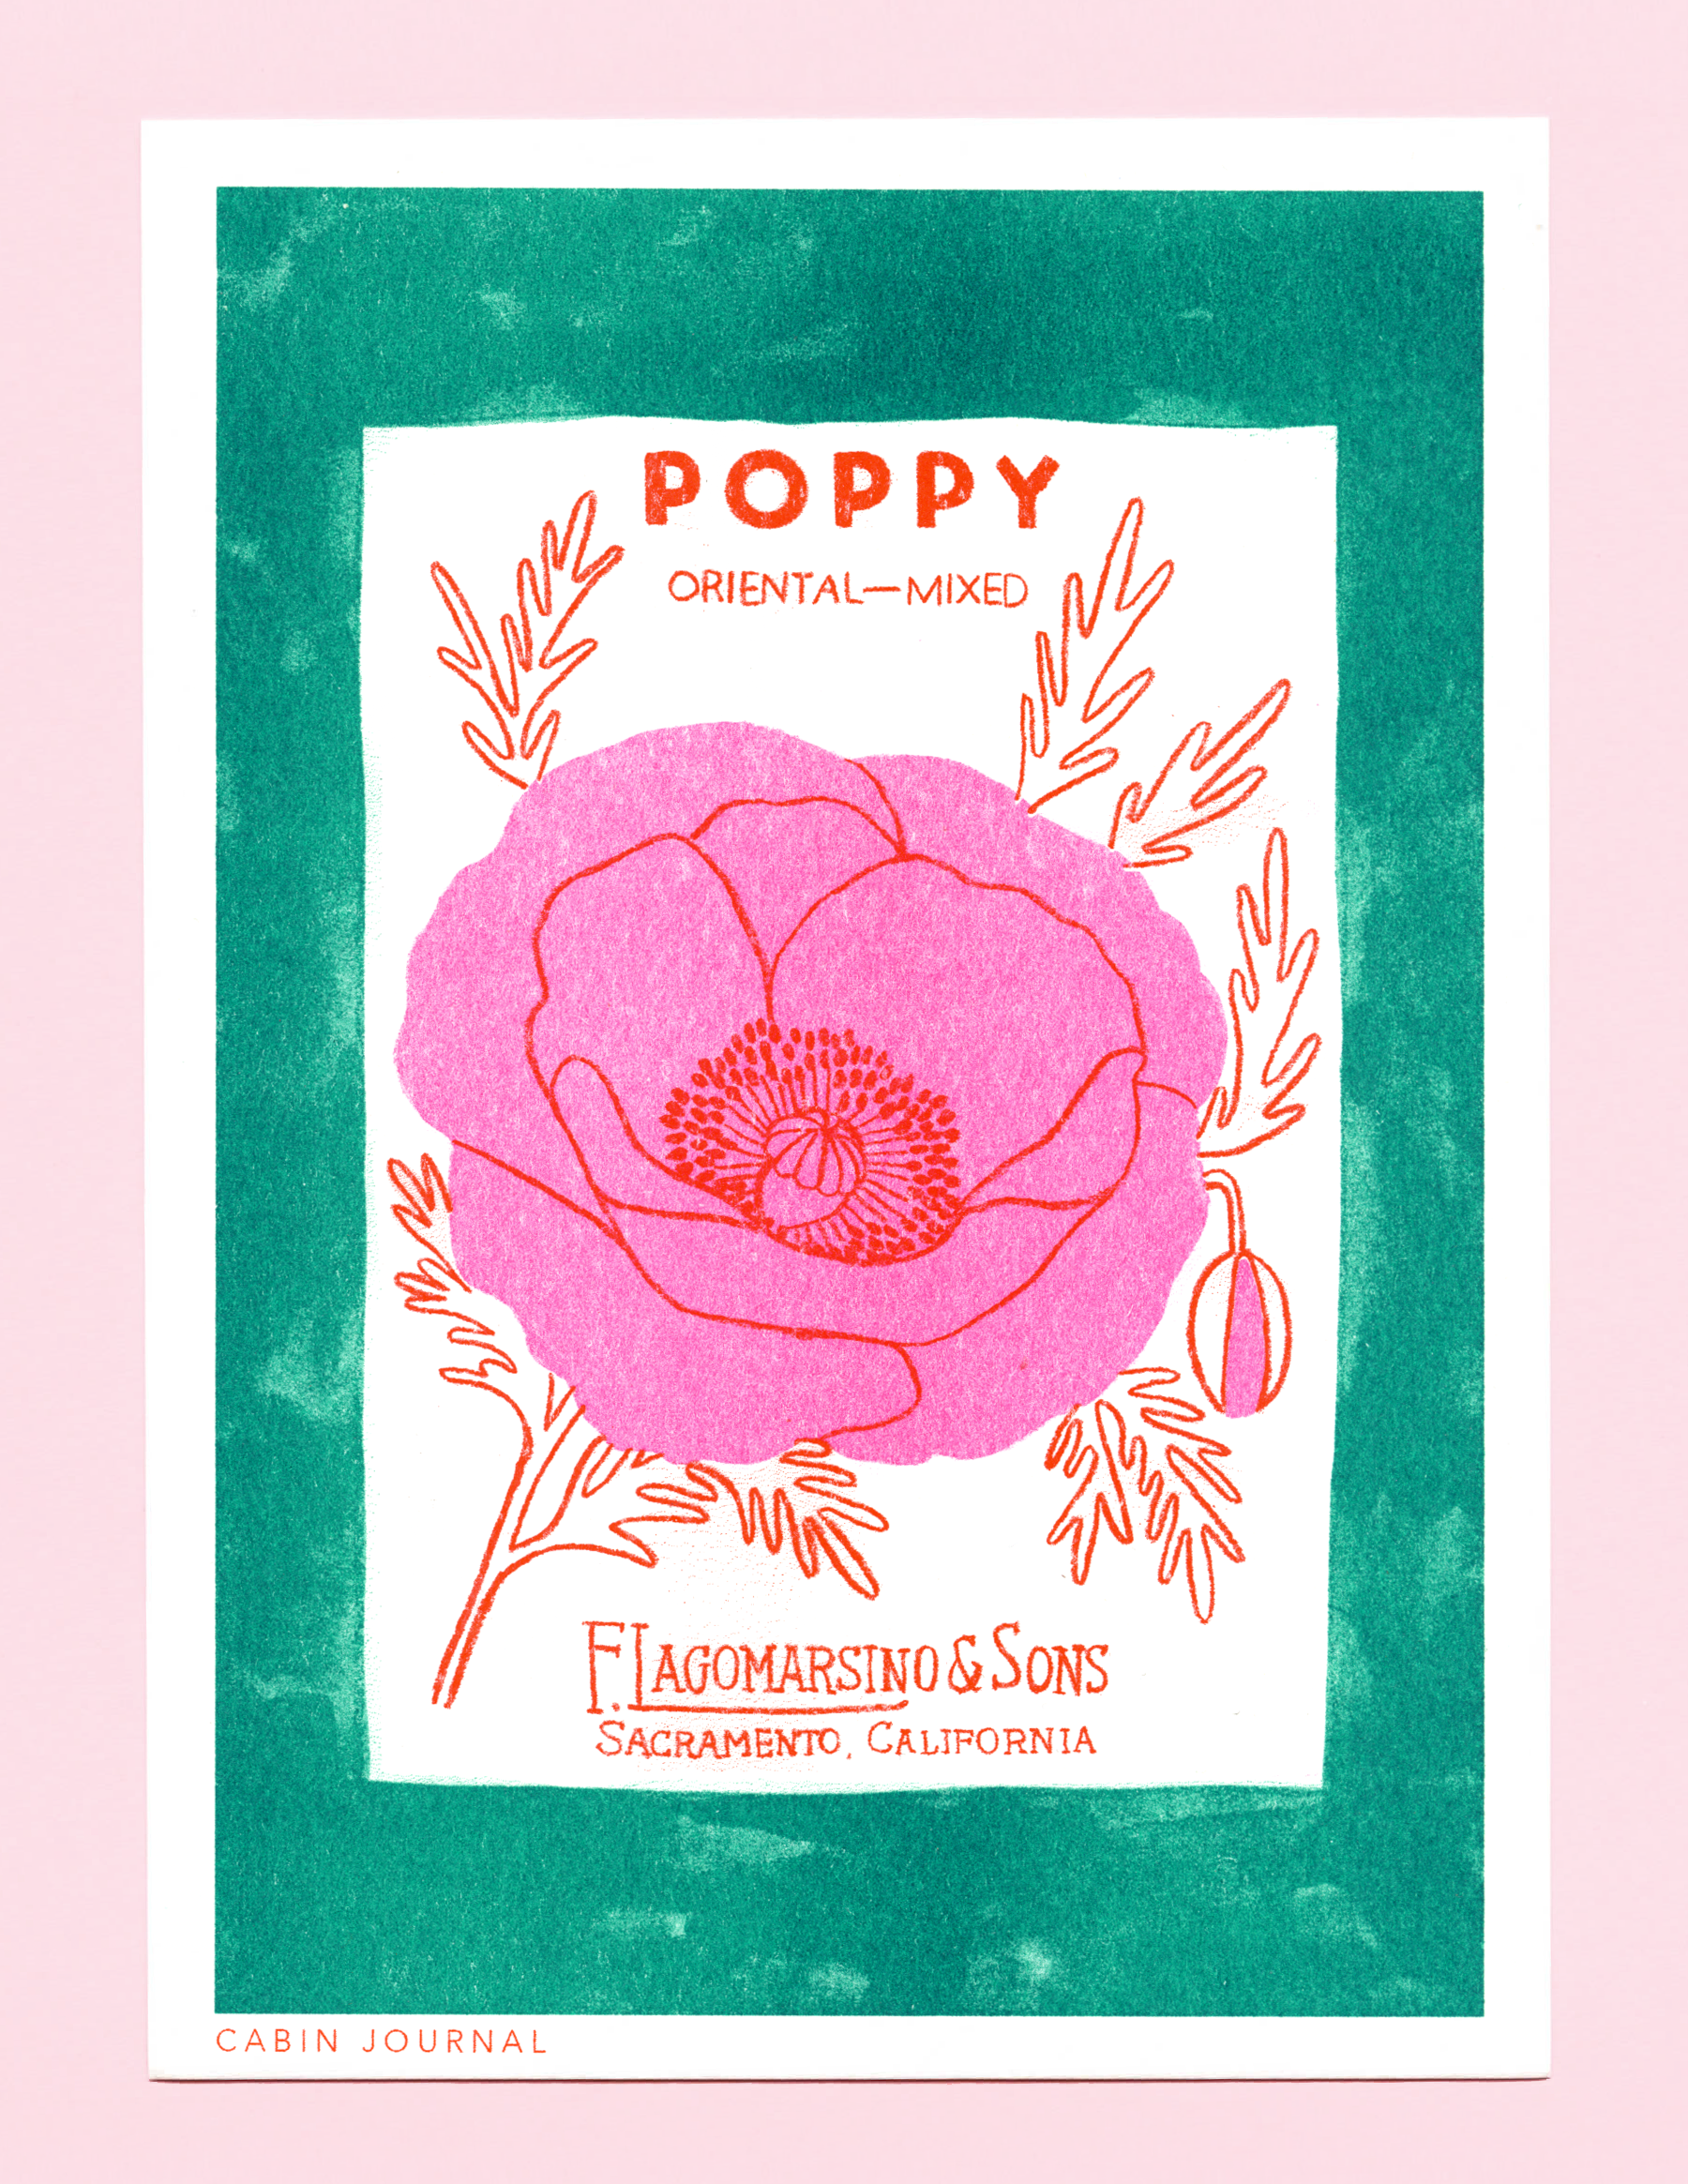 Cabin Journal mini risograph print, inspired by a vintage flower seed pack.